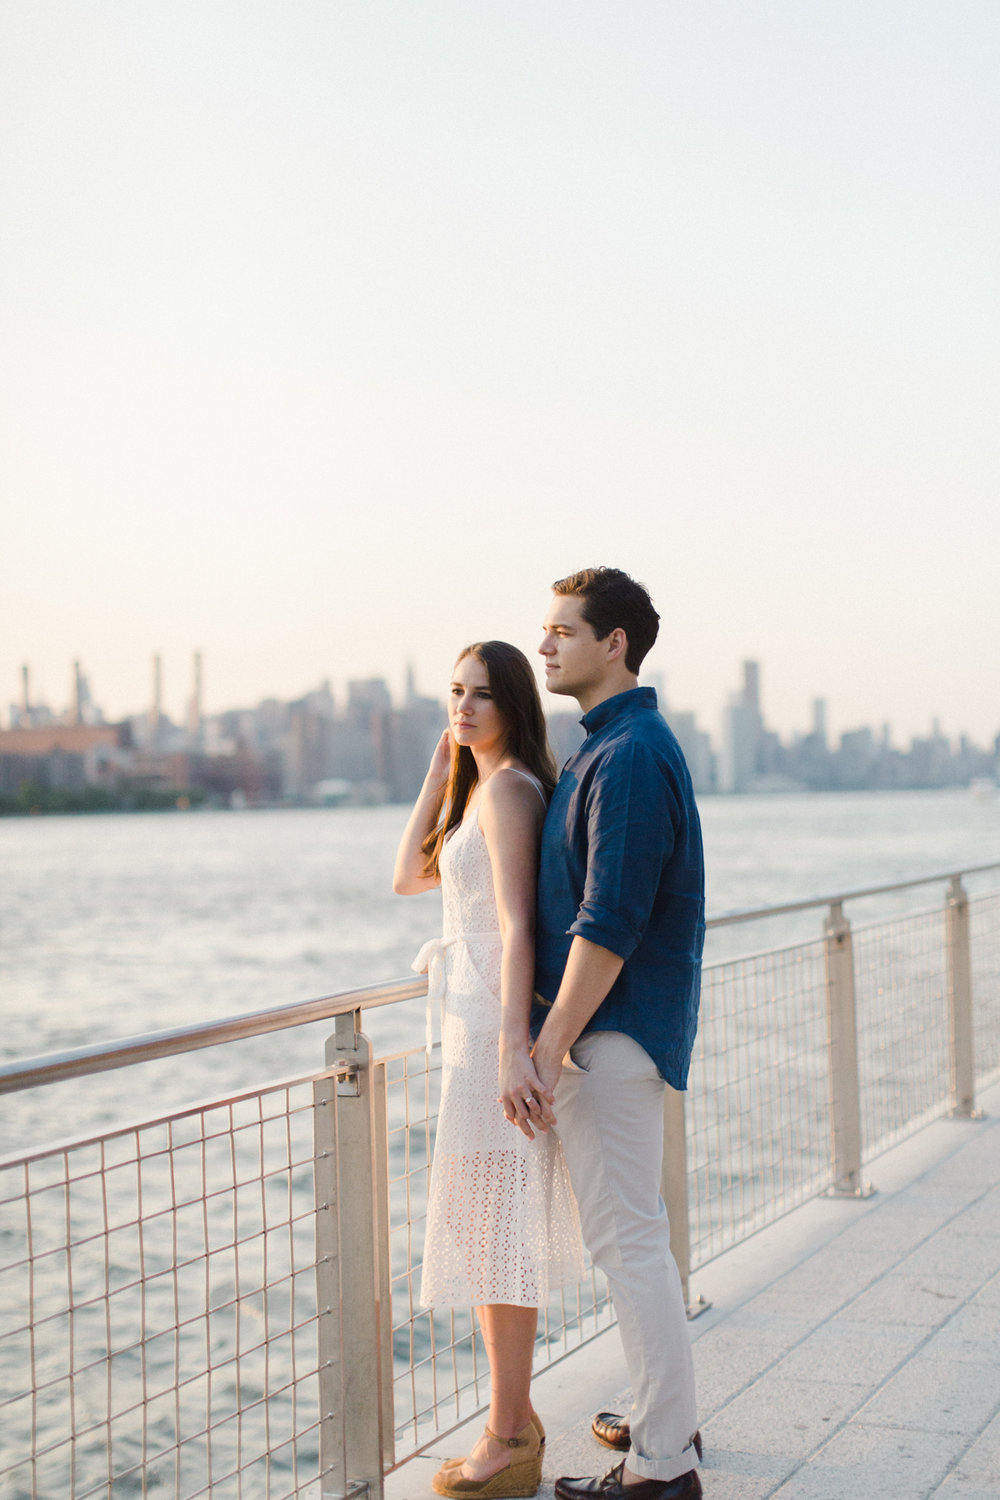 NYC-engagement-Photos-Photographer-Wedding-07.jpg